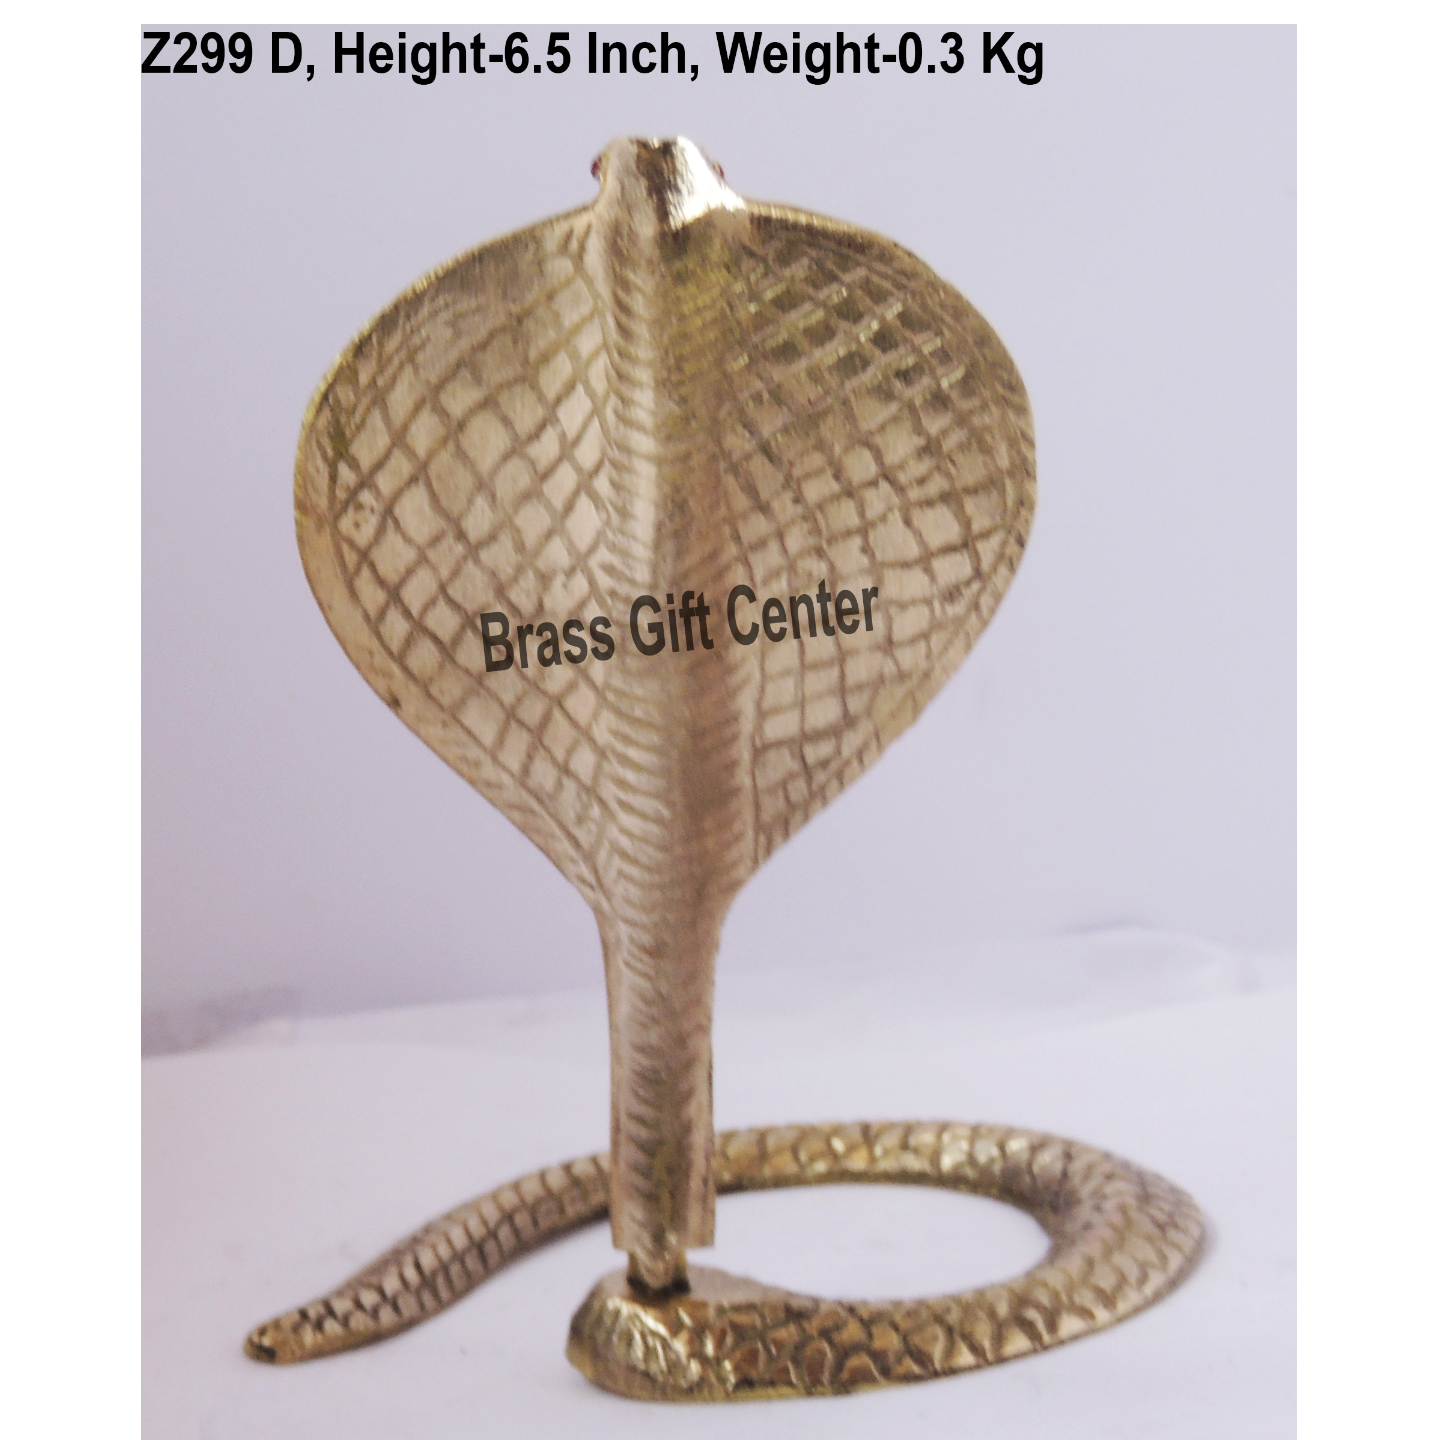 Brass Snake (Saap) For Shivling With Brass Finish, Height 6.5 Inch (Z299 D)